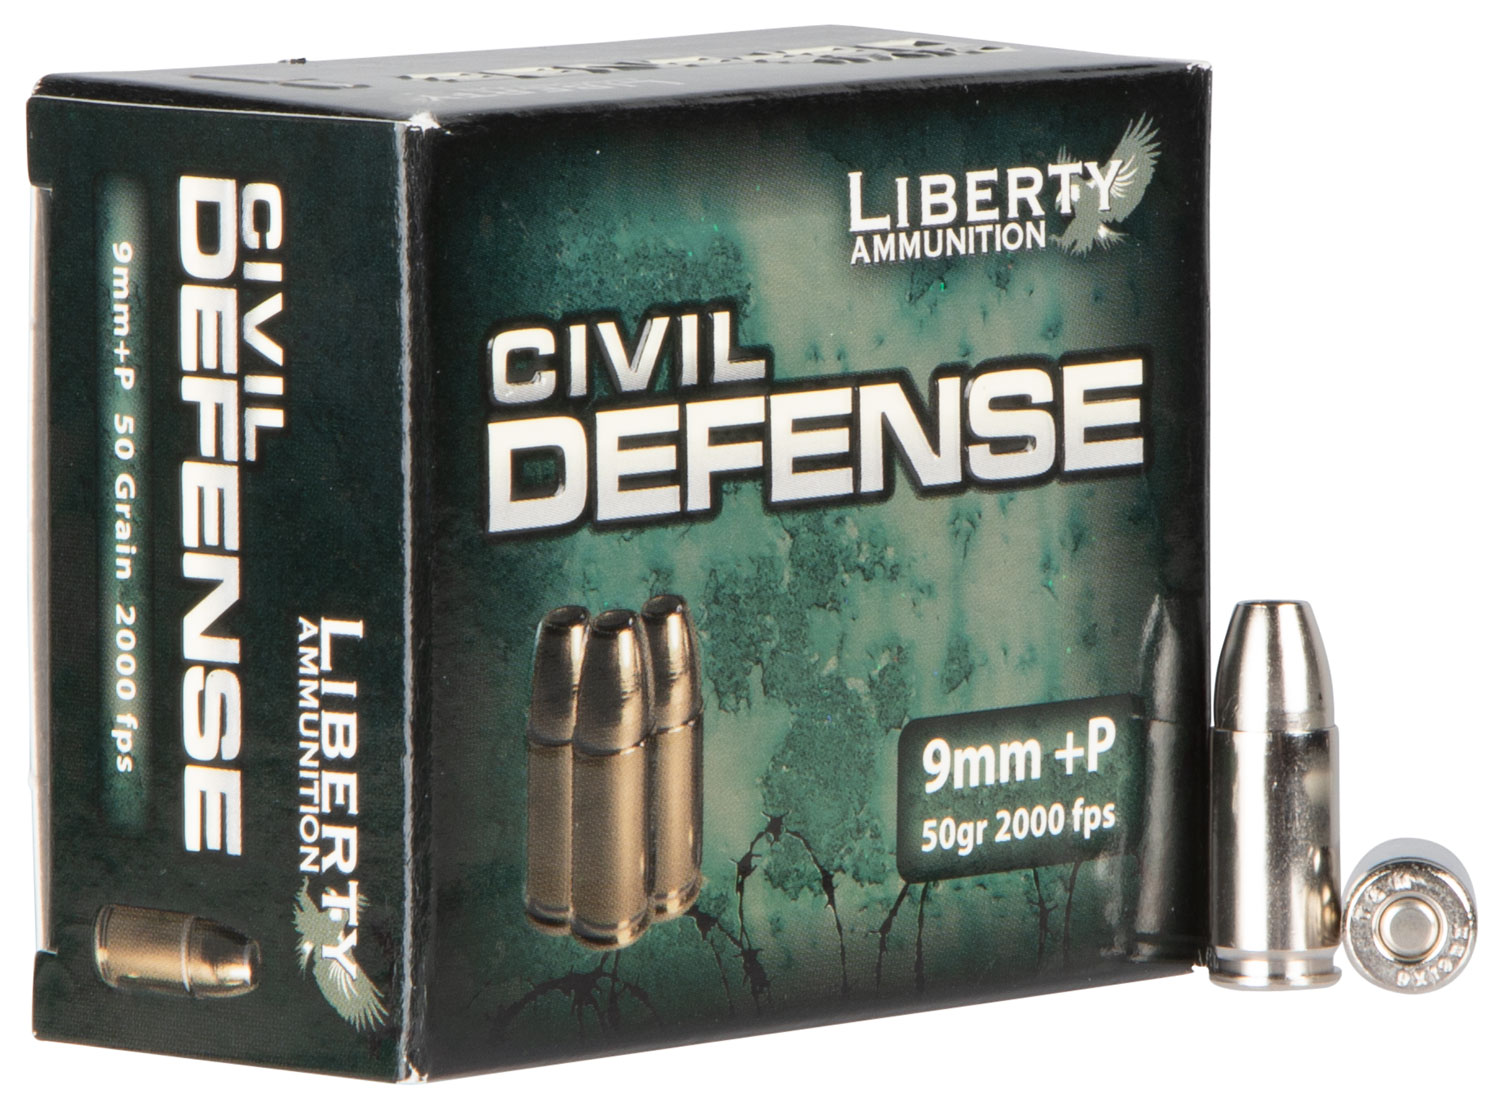 Liberty Ammunition 9MM Civil Defense 9mm 50 GR Lead-Free 20 Box/25 Case